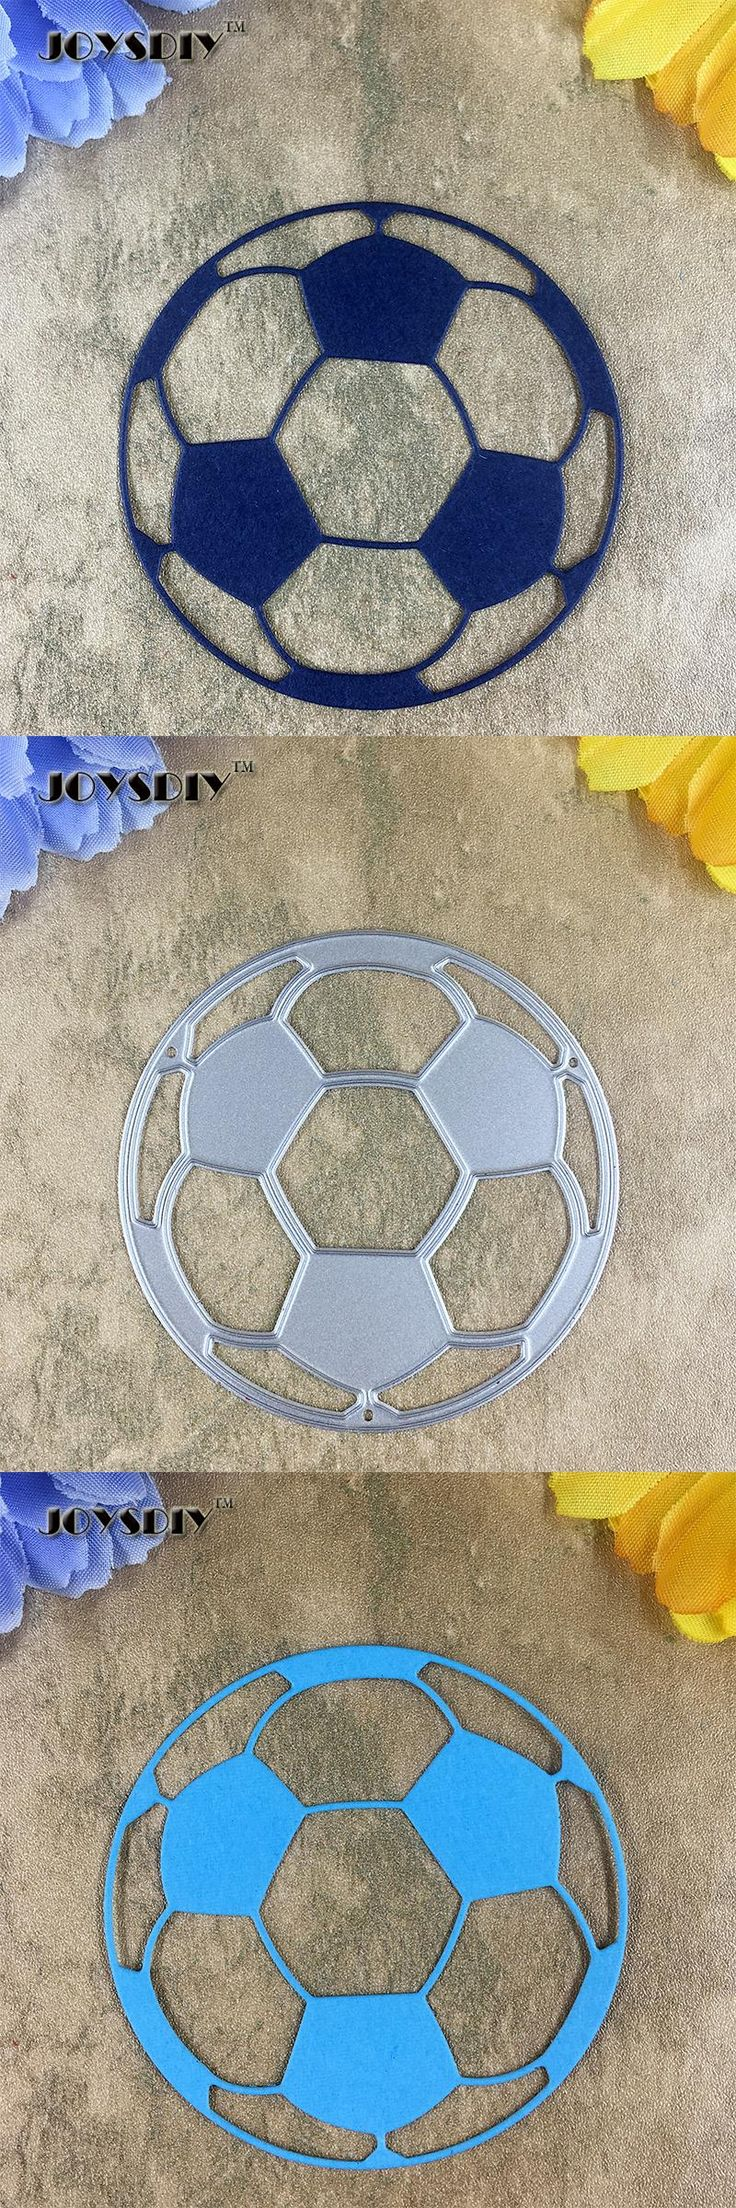 [Visit to Buy] Football Item 01 Card Maker Metal Die Cutting Dies For DIY Scrapbooking Photo Album Decorative Die Cutting Template  #Advertisement